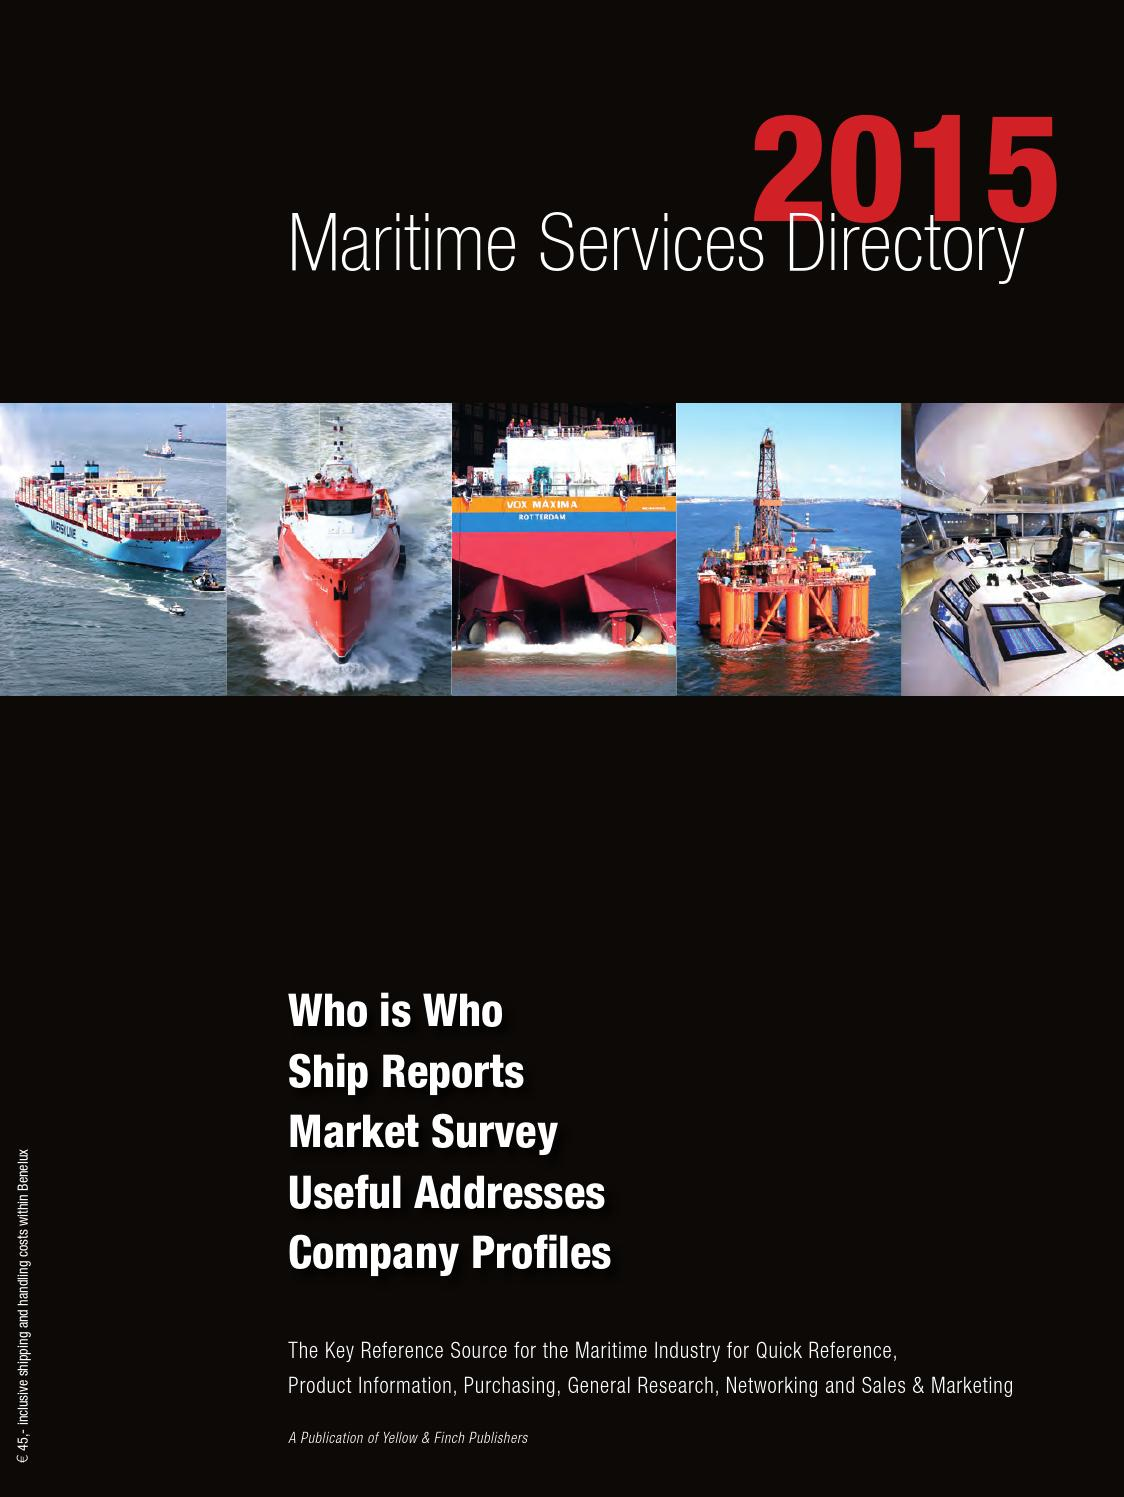 Maritime Services Directory 2015 By Yellow Finch Publishers Issuu Solar Cruise 160w Package Incl Pwm Controller Charges